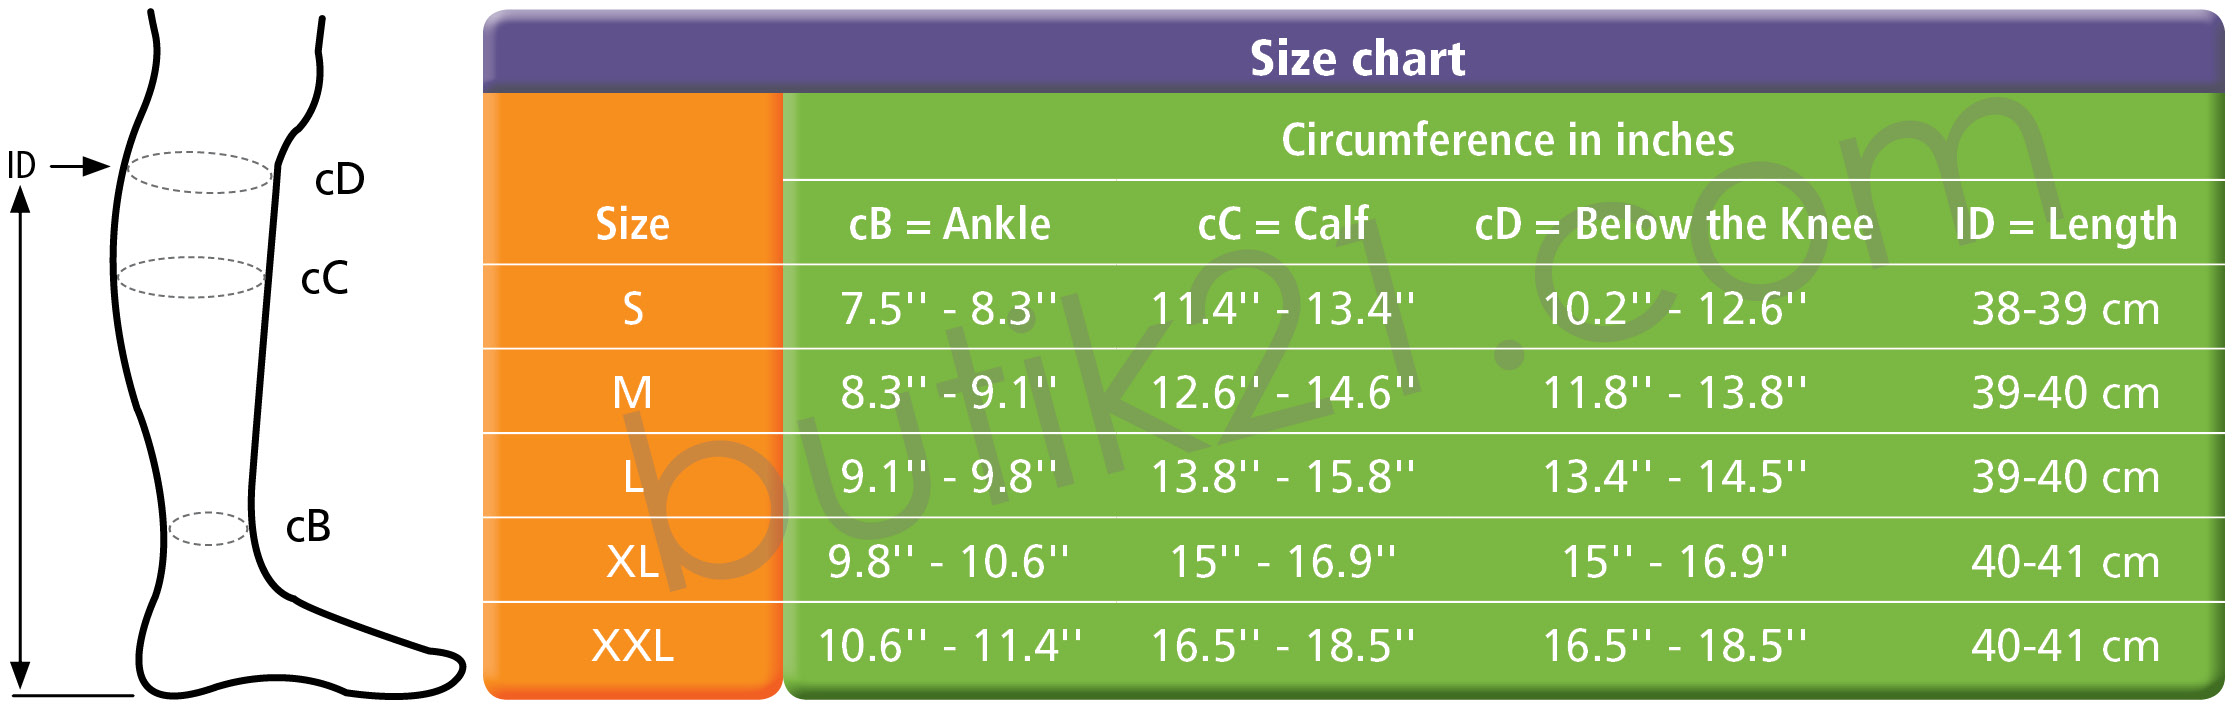 Size chart medical compression socks